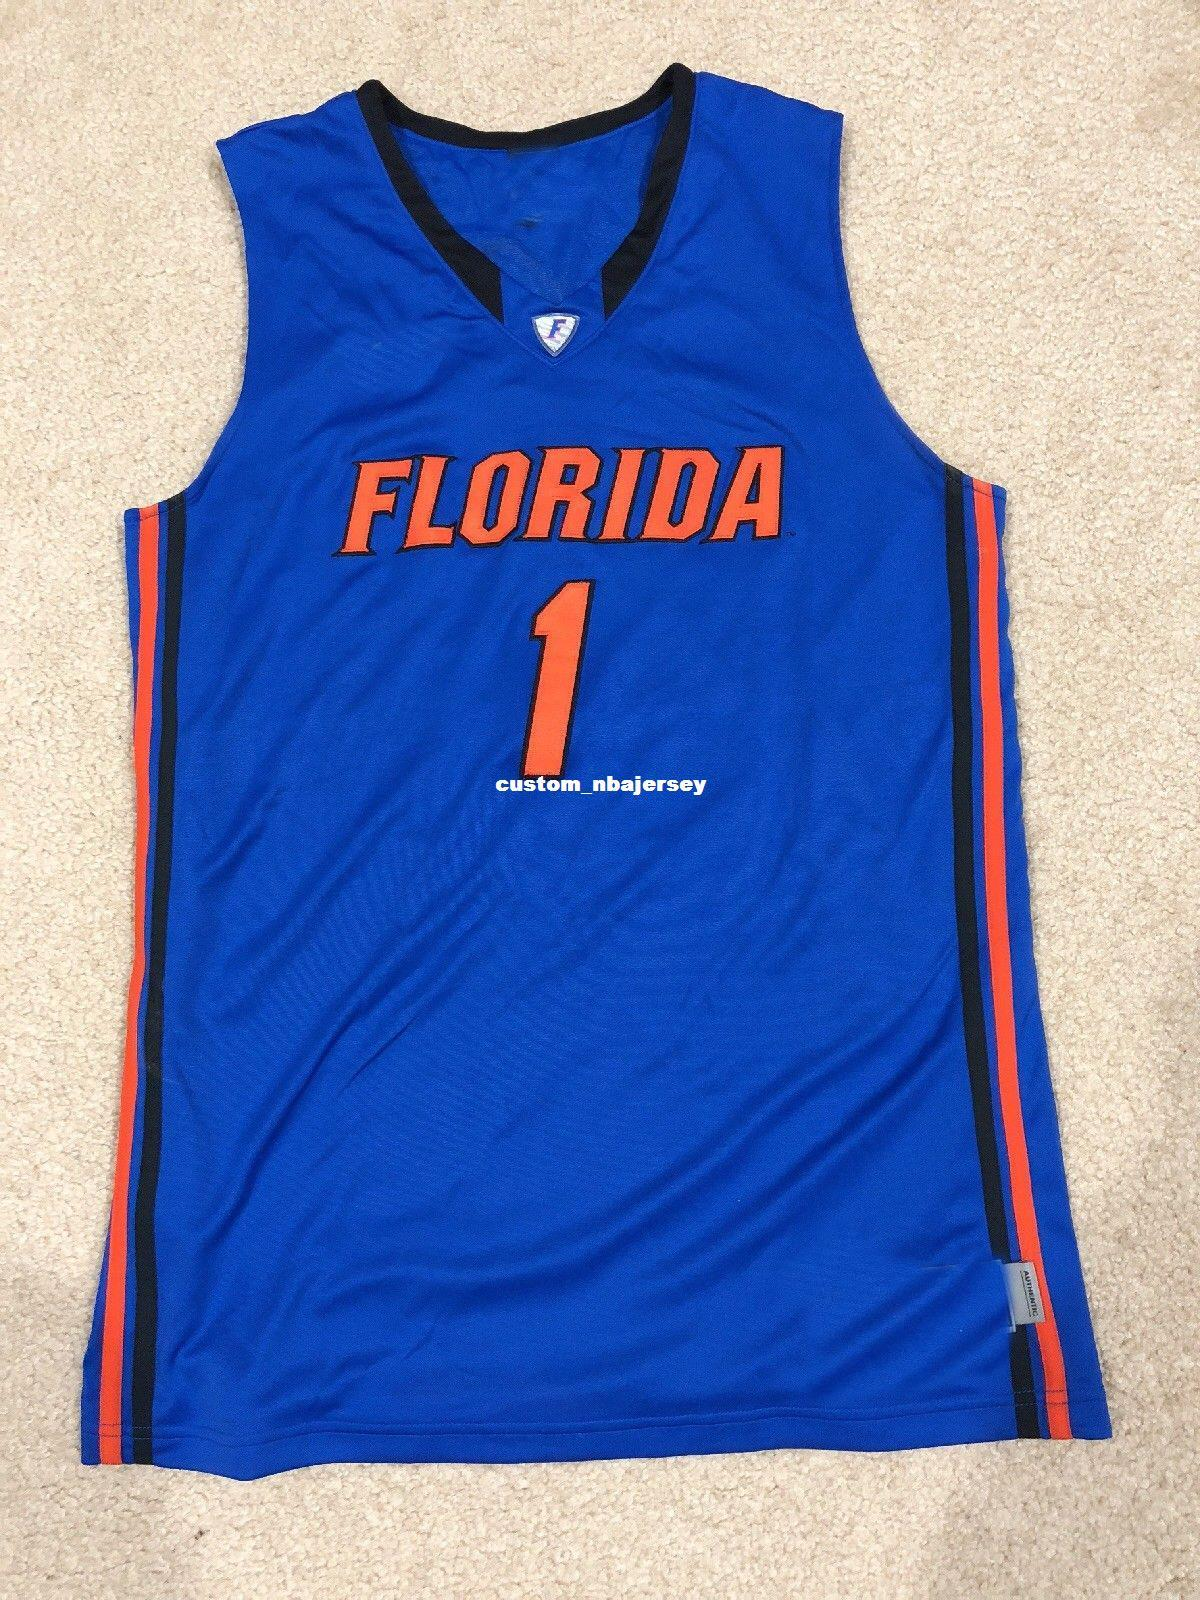 2a3cf6127 2019 Cheap Custom FLORIDA GATORS Basketball Jersey #1 Stitched Customize  Any Number Name MEN WOMEN YOUTH XS 5XL From Custom_nbajersey, $18.28 |  DHgate.Com